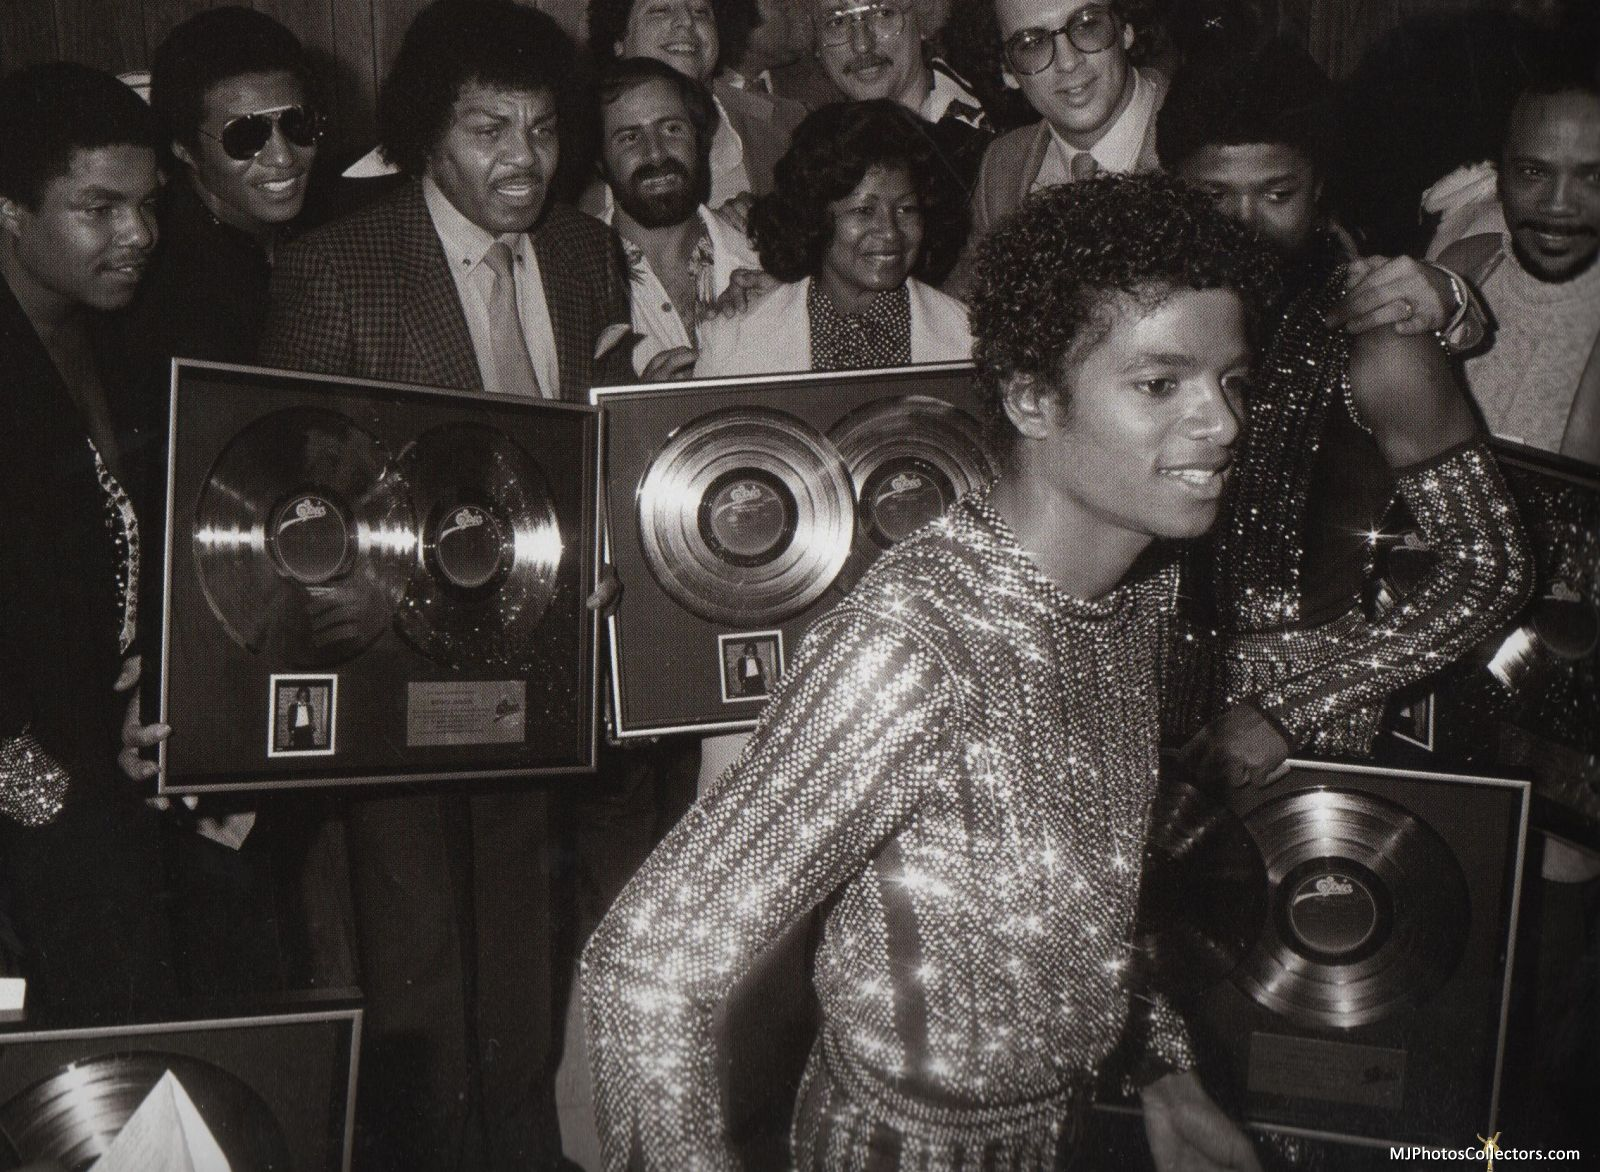 During Triumph Tour, Michael's album Off The Wall is awarded for record sales